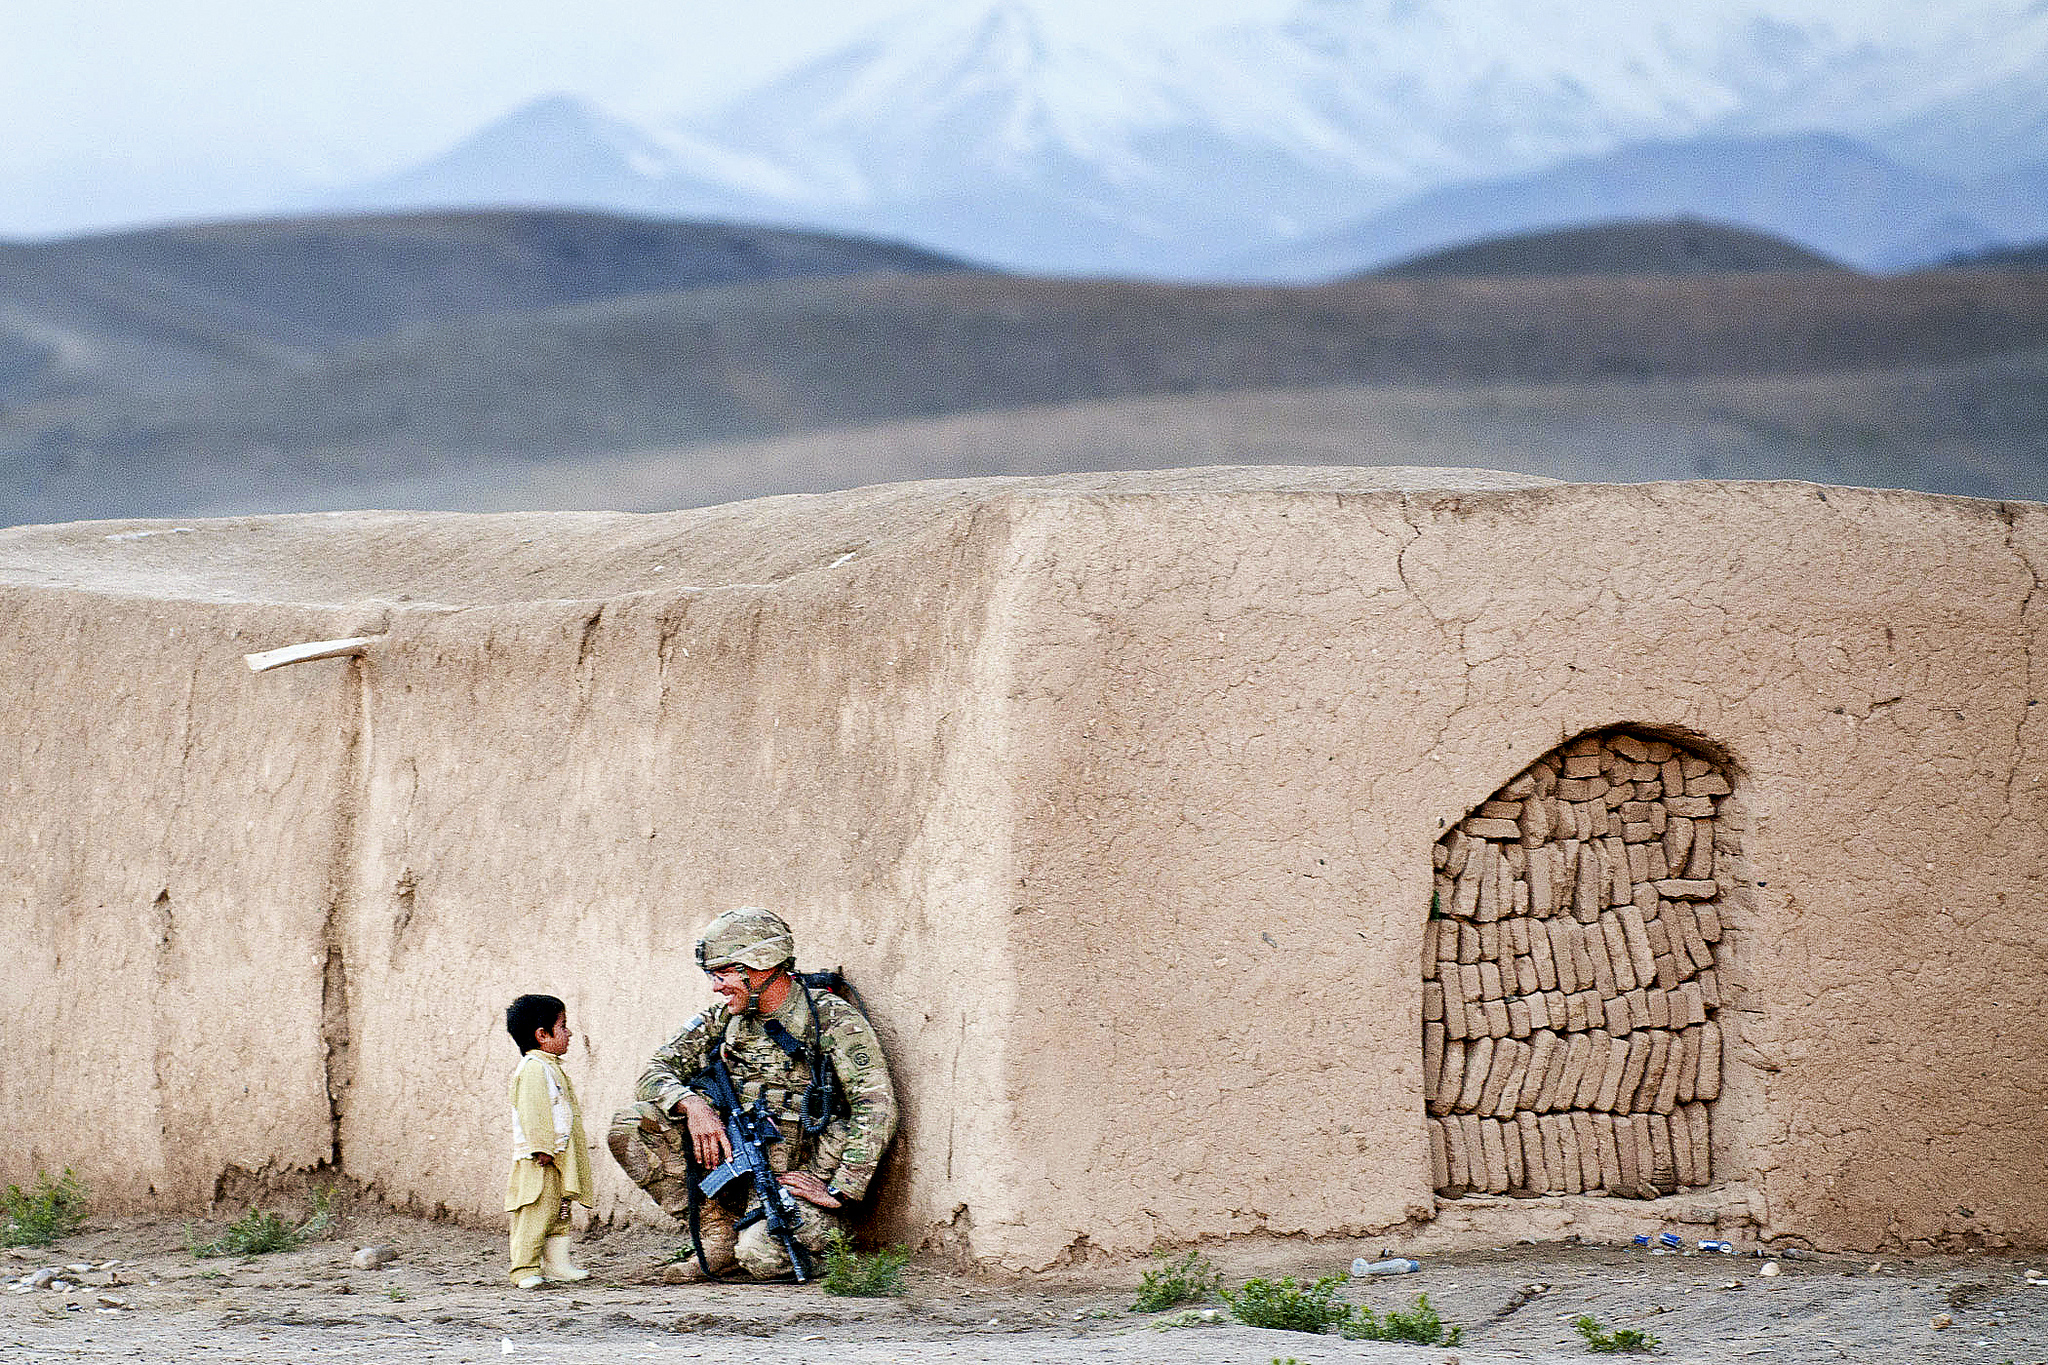 US soldier chatting with Afghan child